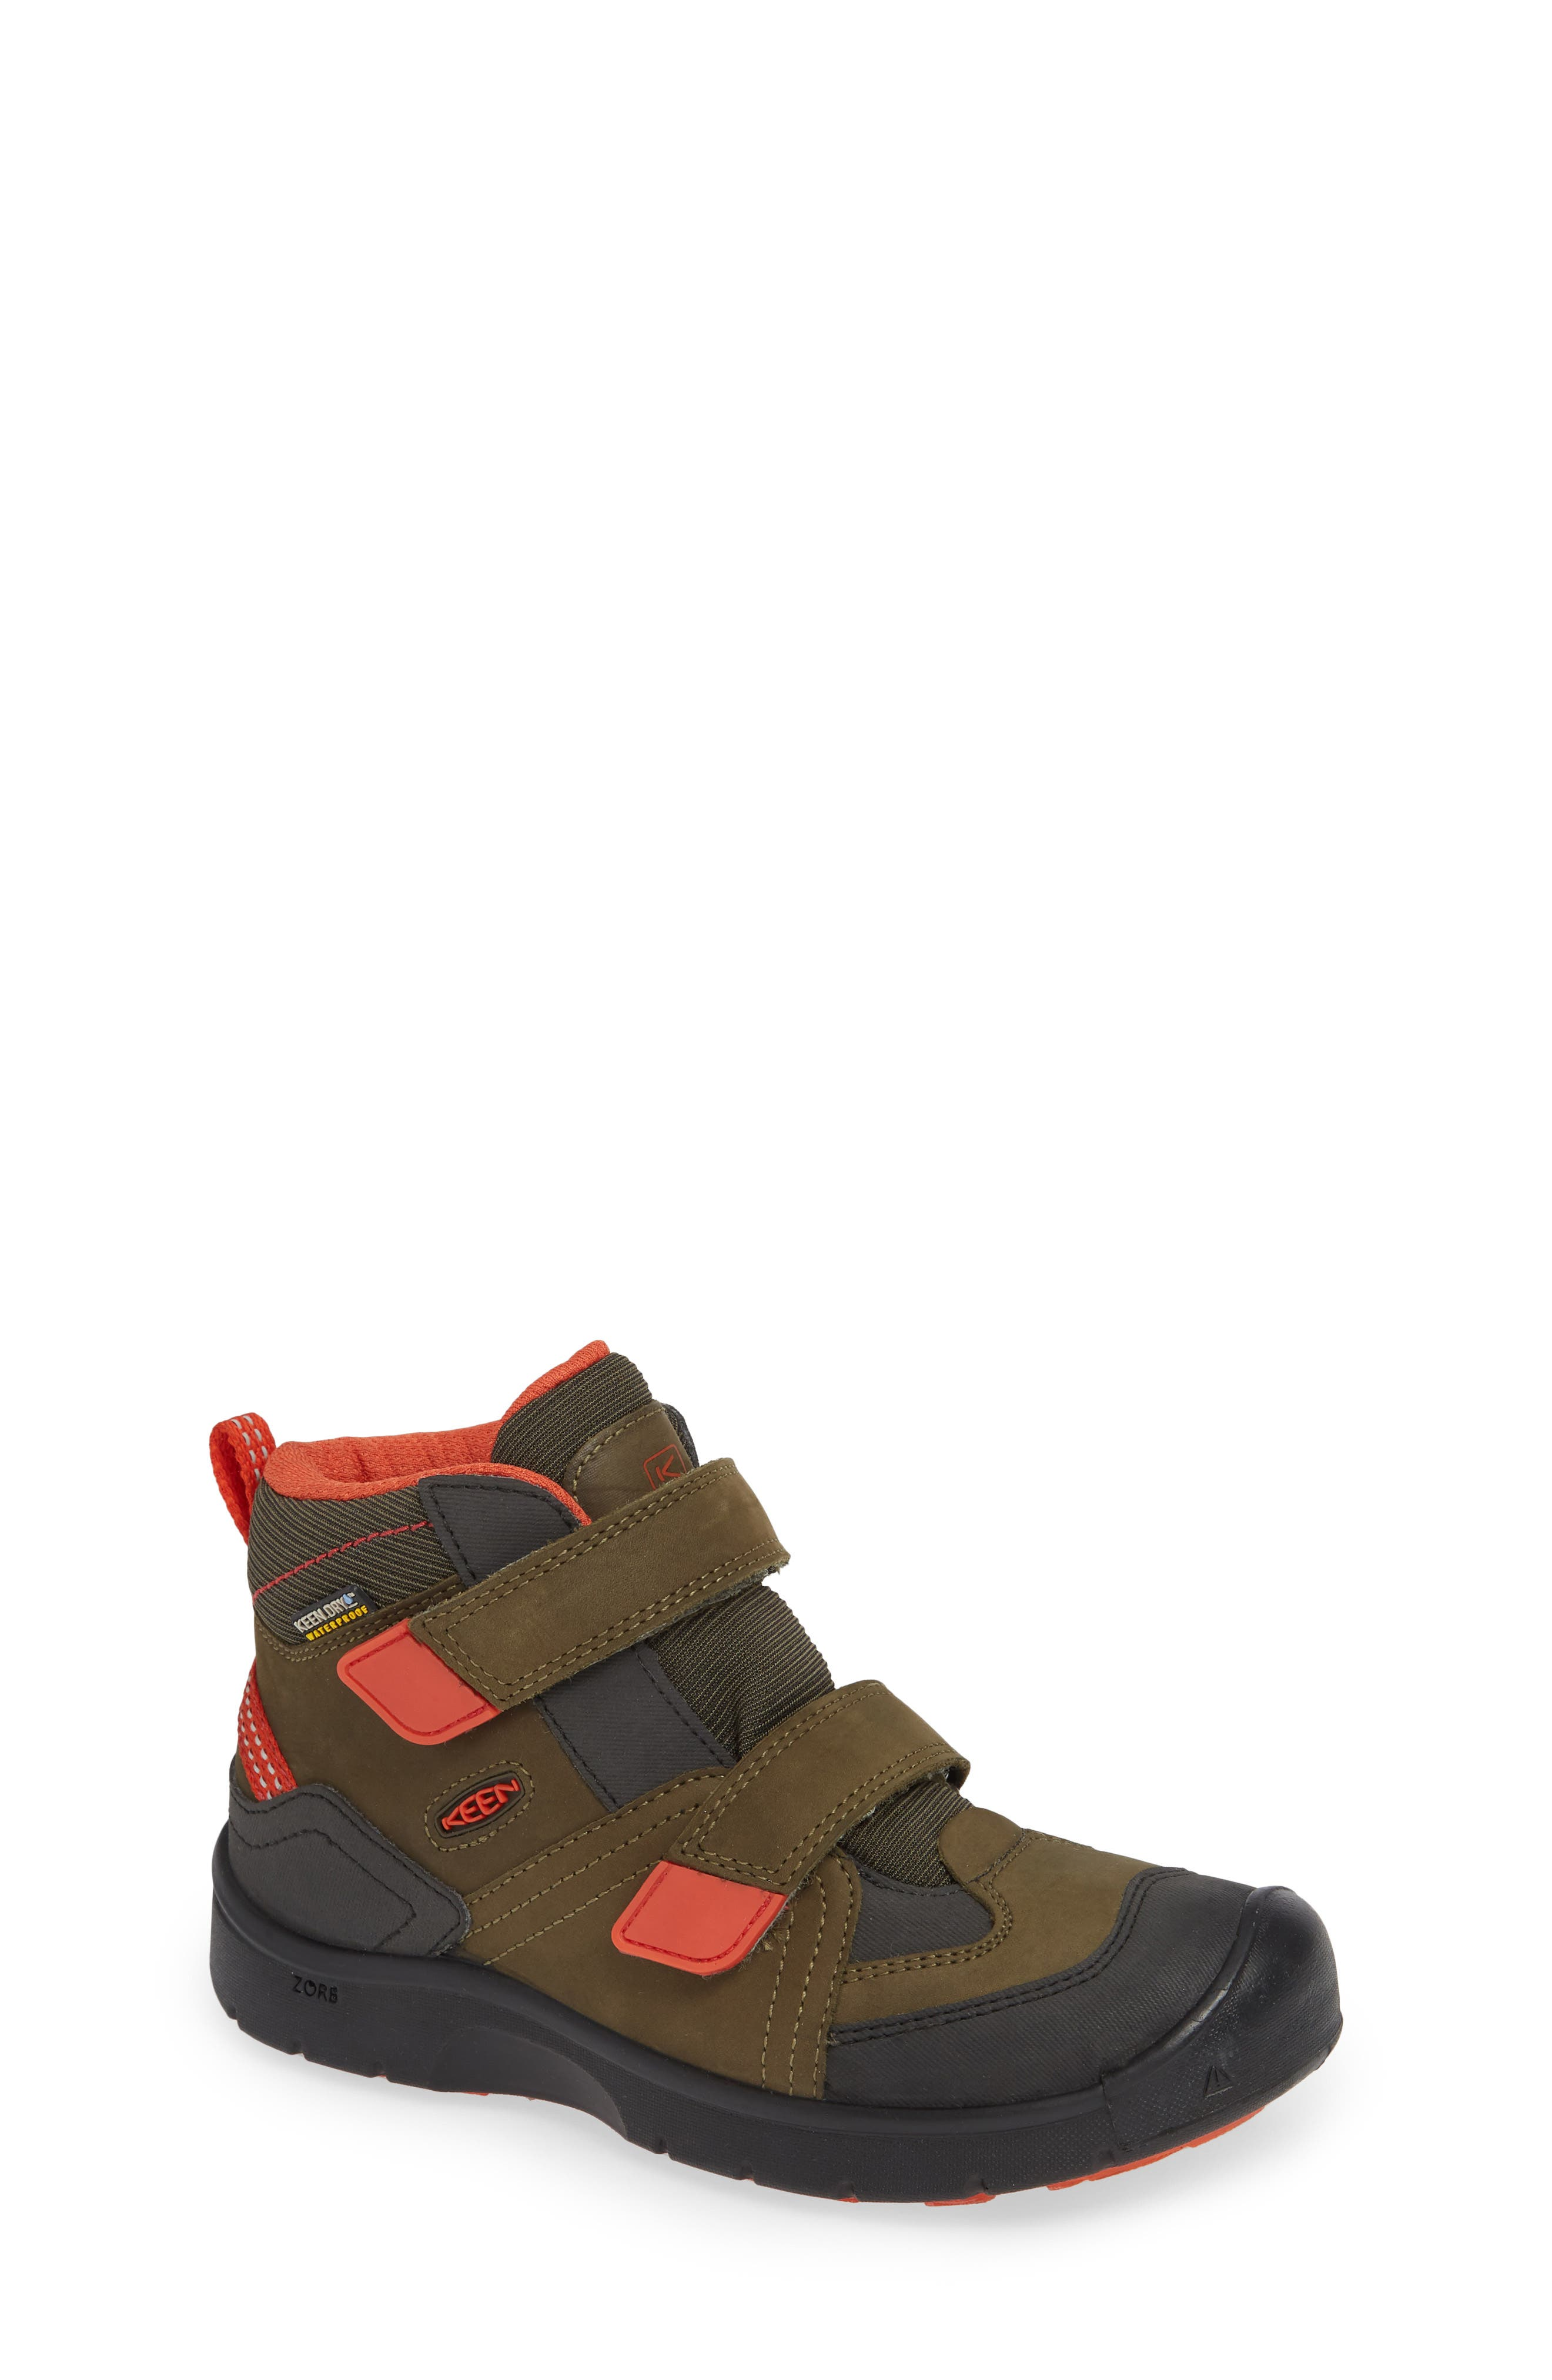 KEEN, Hikeport Strap Waterproof Mid Boot, Main thumbnail 1, color, MARTINI OLIVE/ PUMPKIN